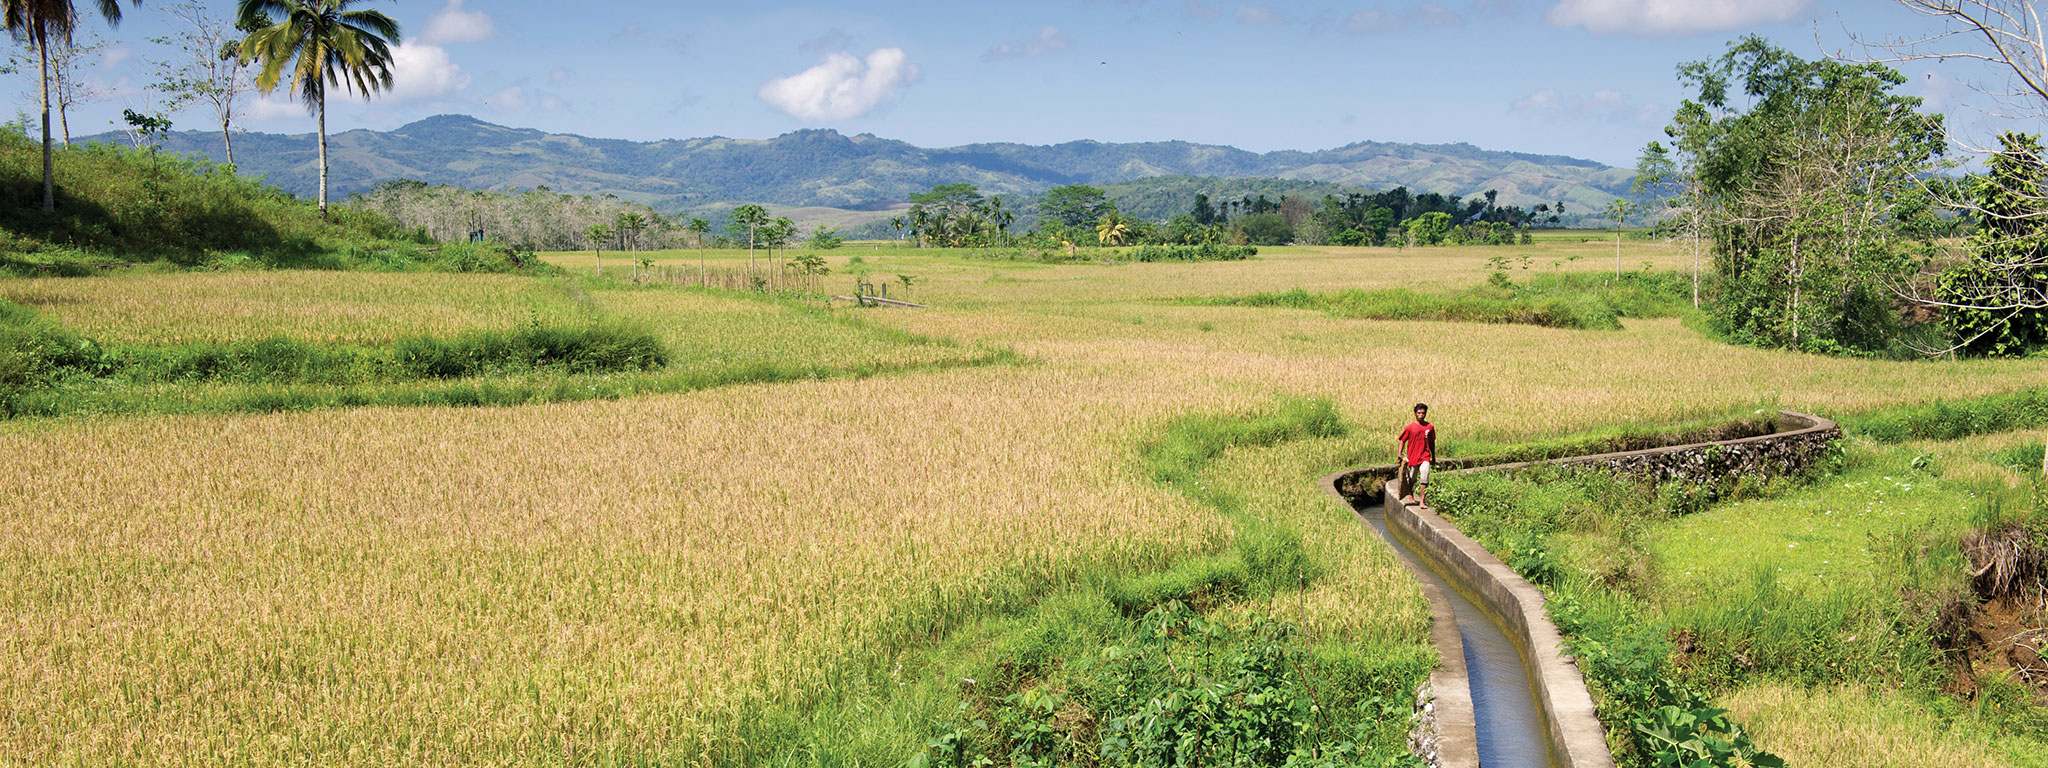 indonesia-sumba-island-rice-field